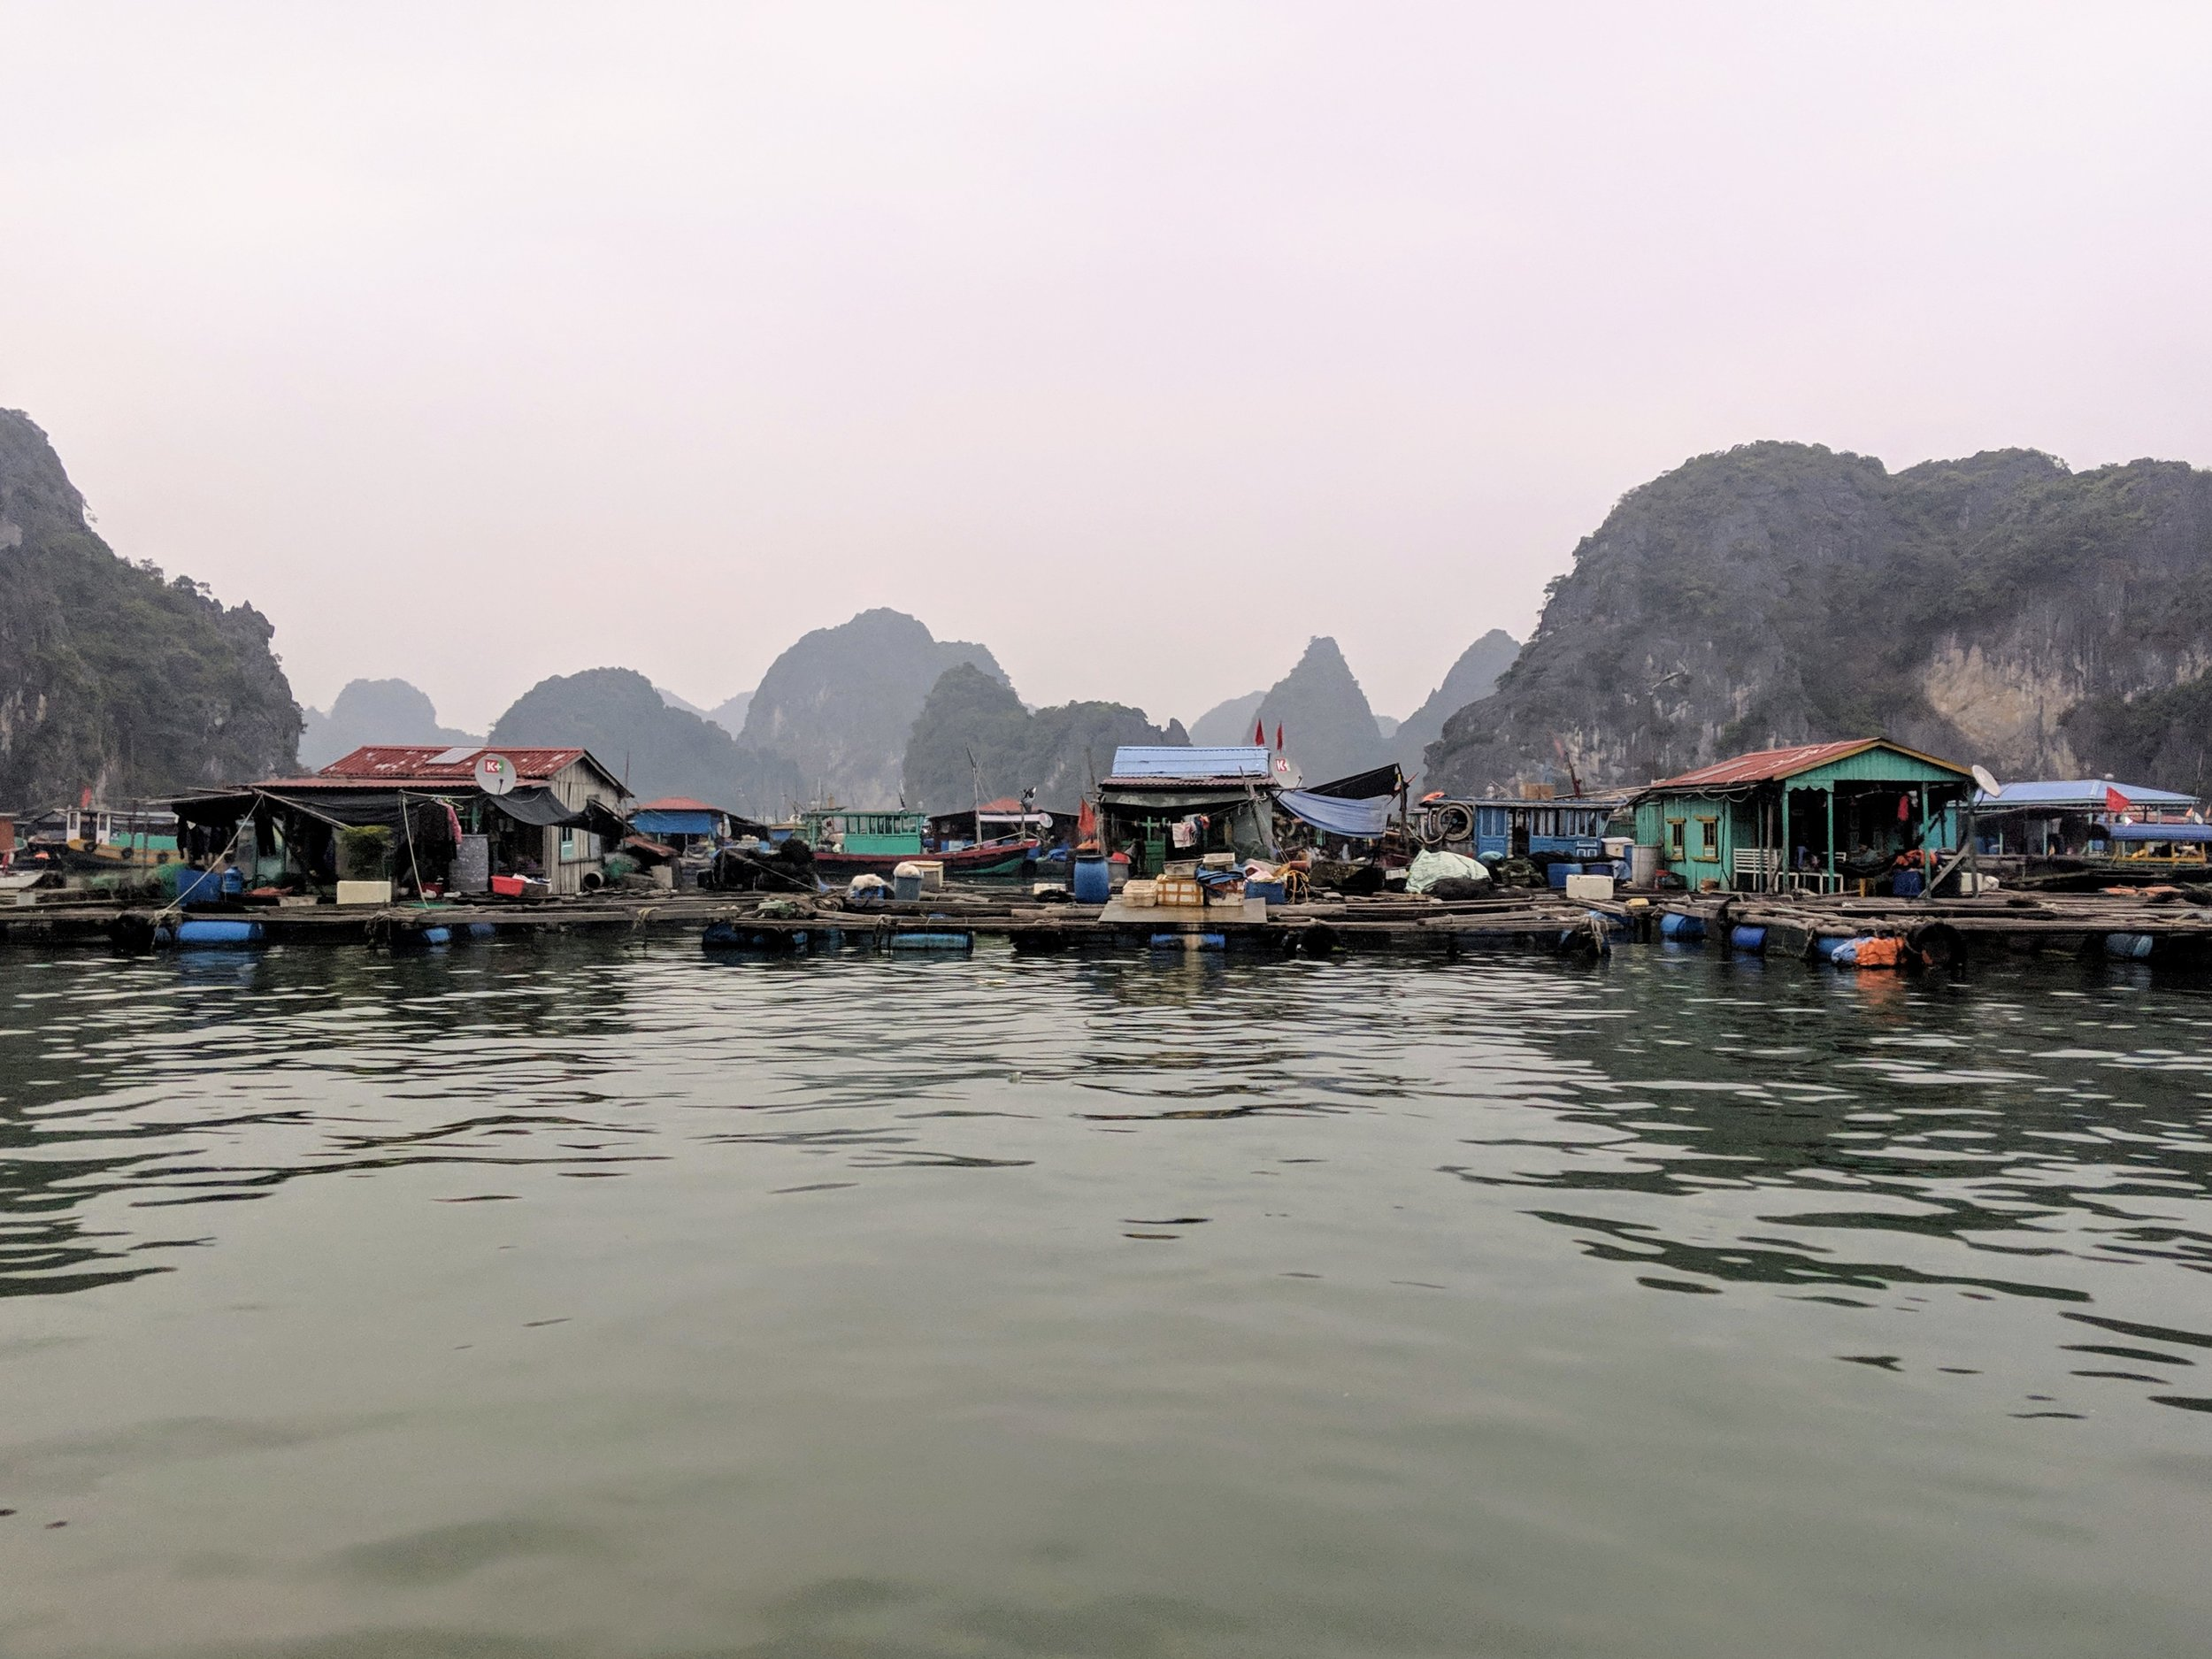 Kayaking Near Floating Houses, Cat Ba